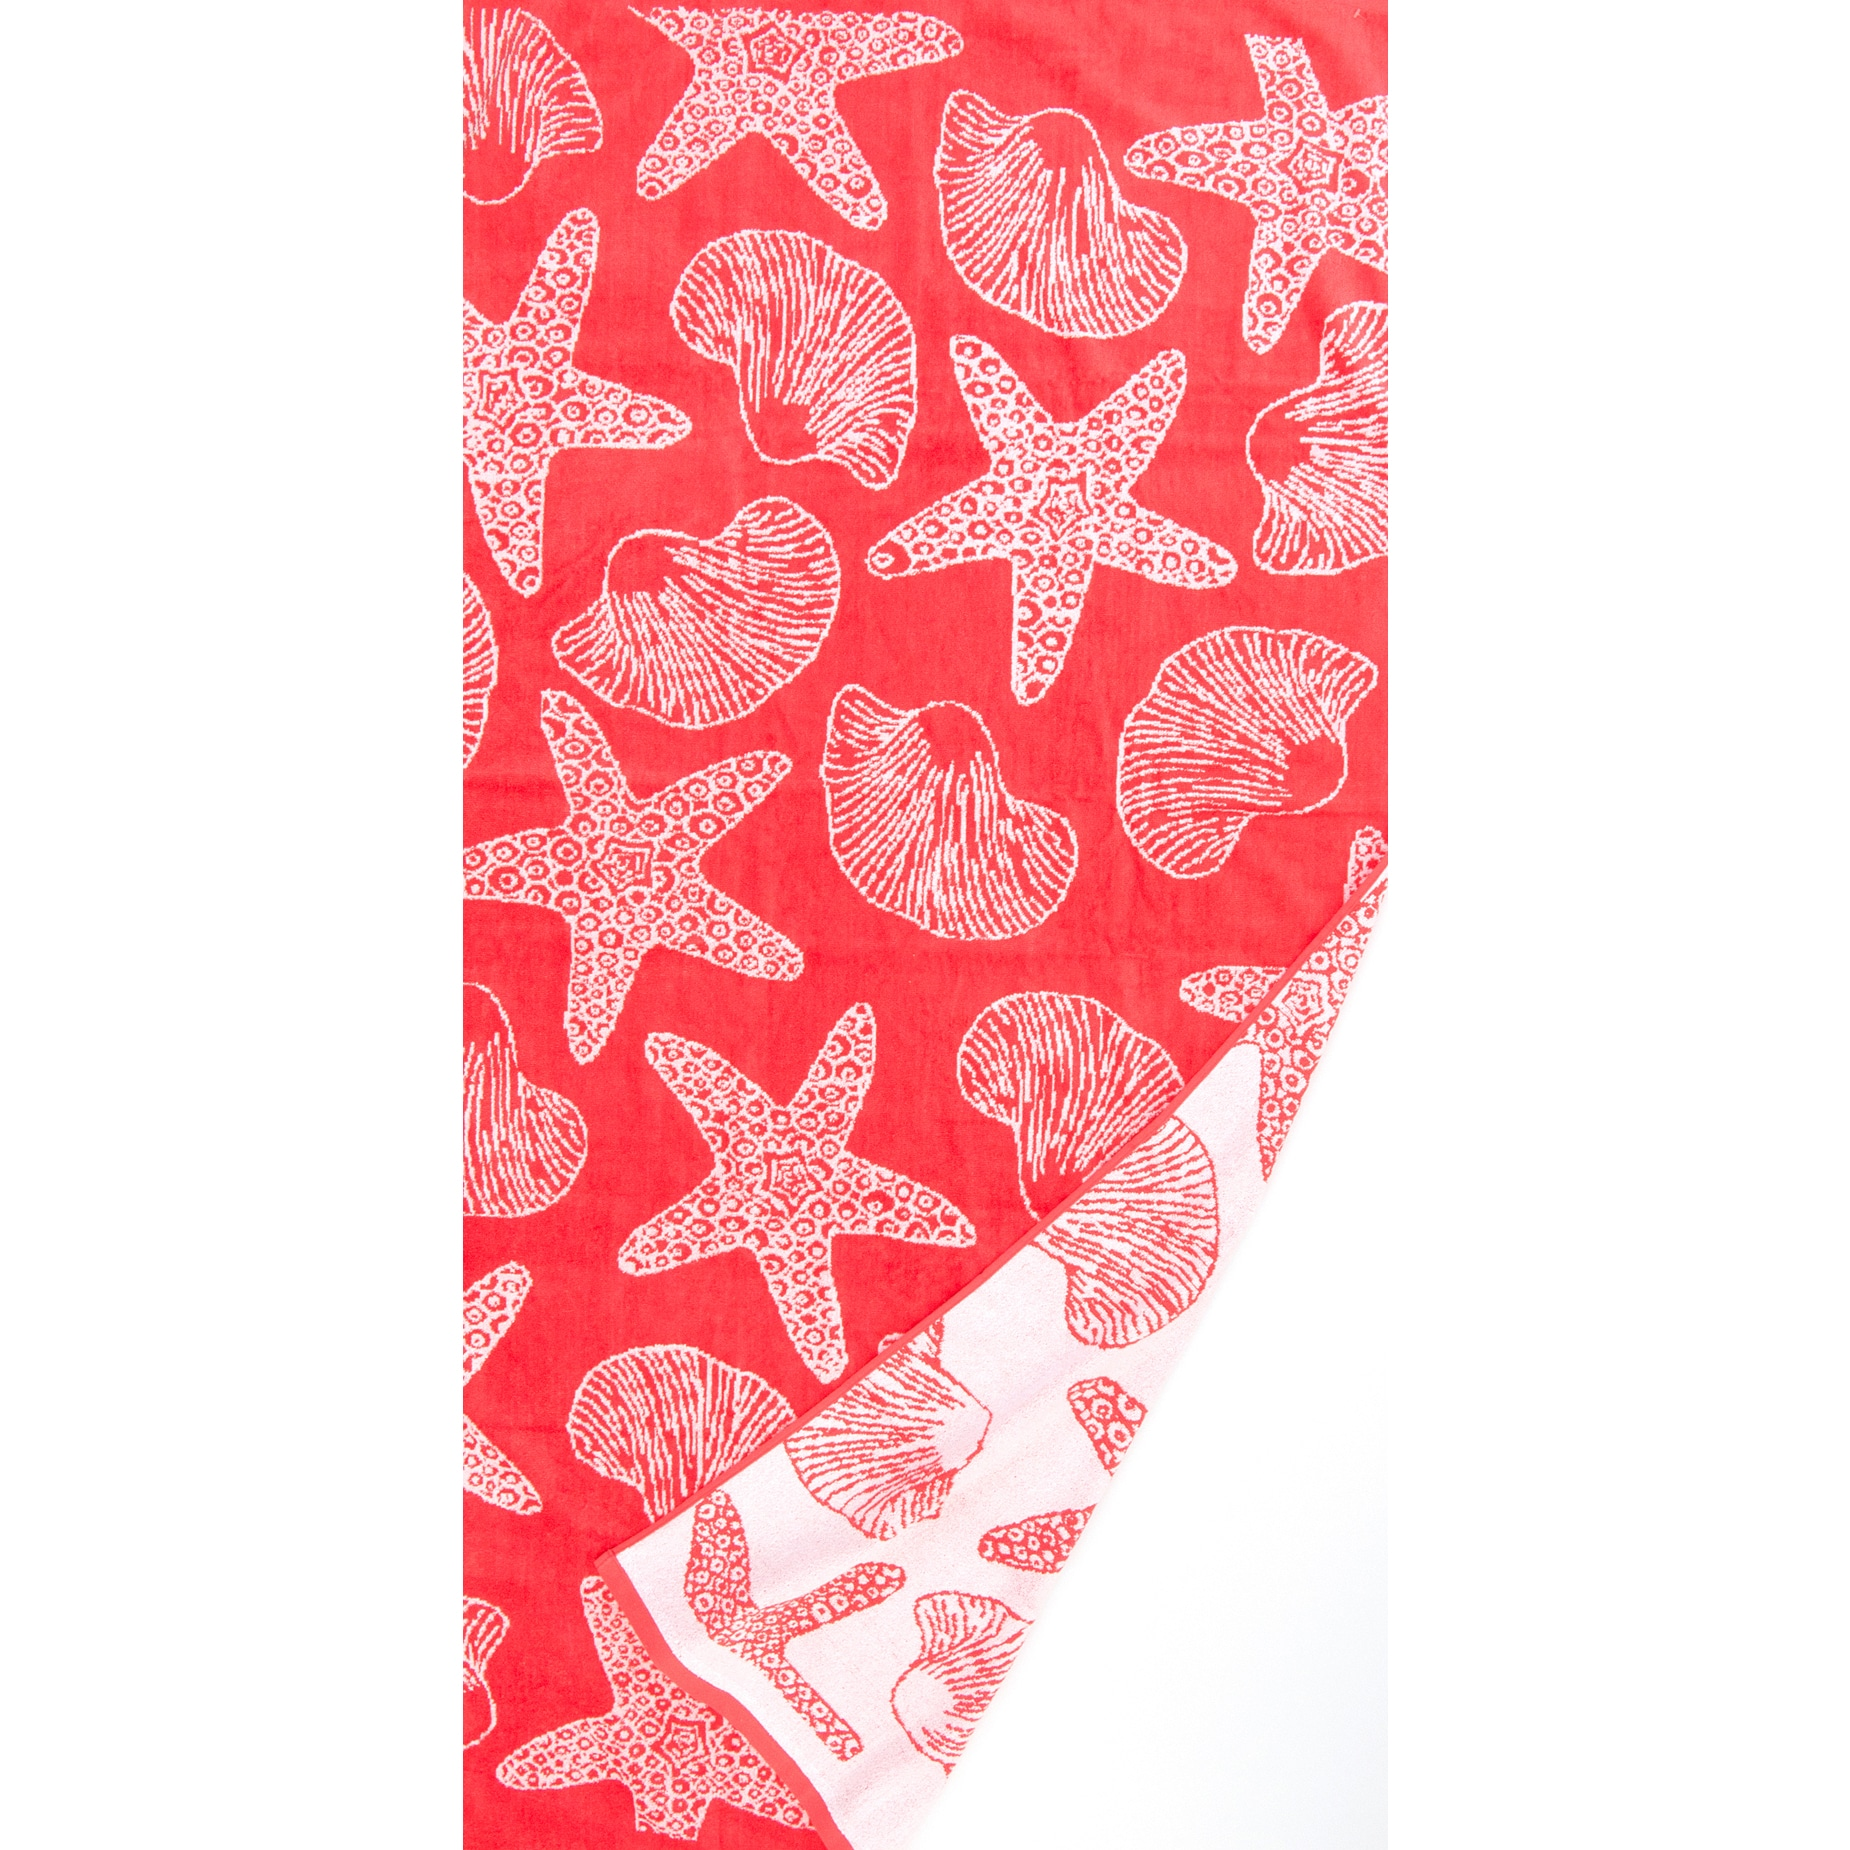 Global St.Tropez Sands Seashore Coral Beach Towel Collect...